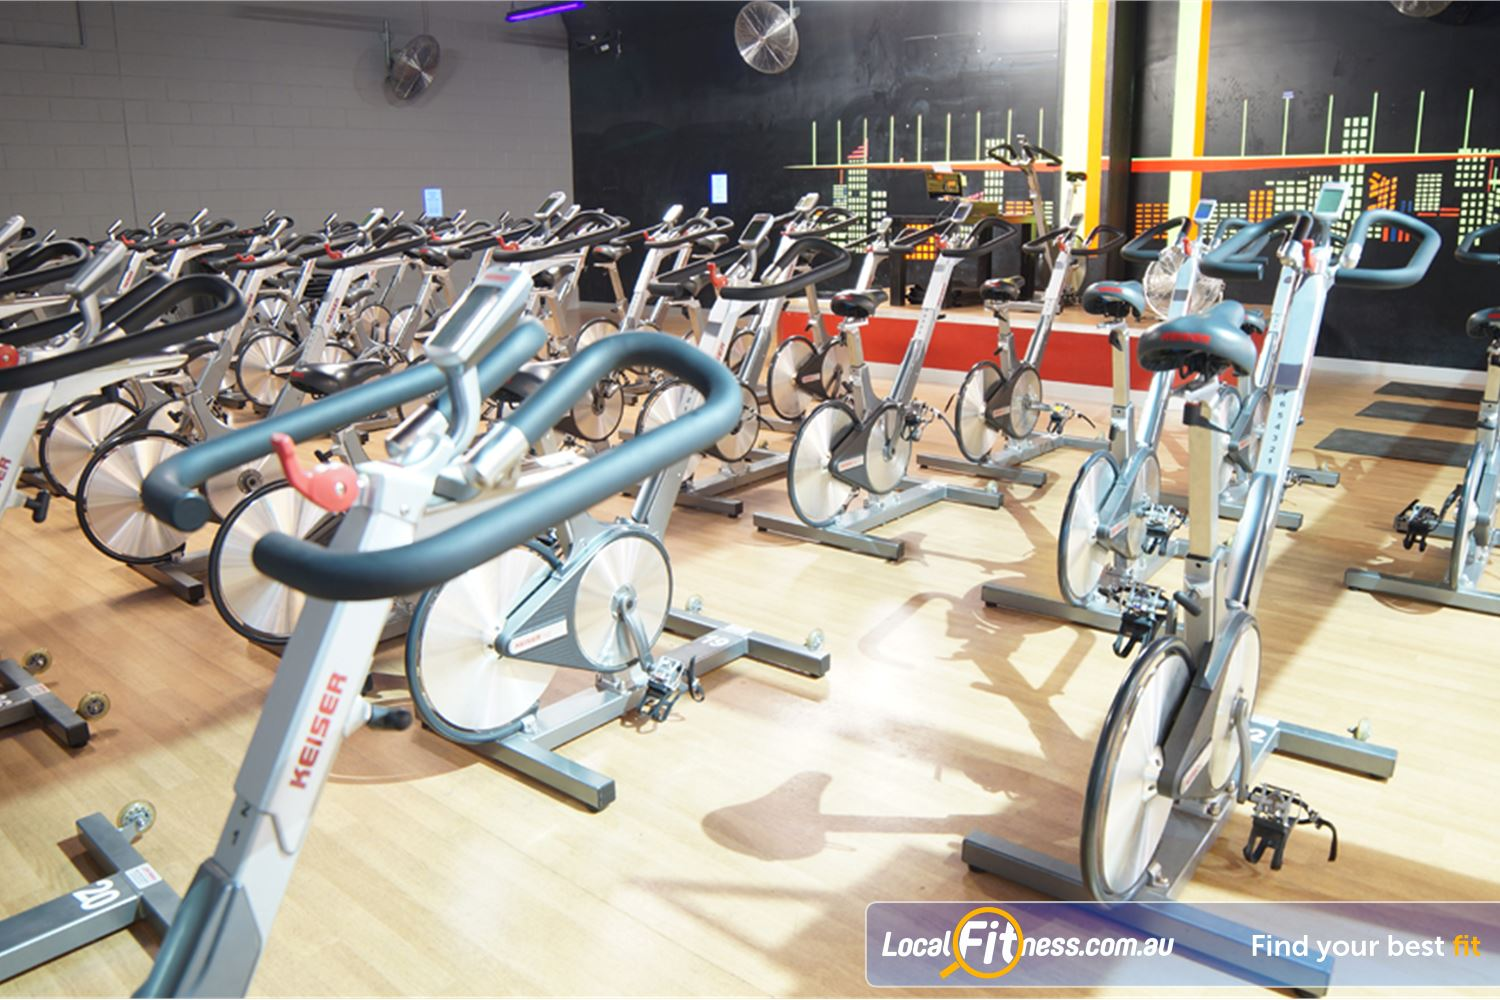 Goodlife Health Clubs Near Port Melbourne Burn calories fast in our South Melbourne cycle studio.